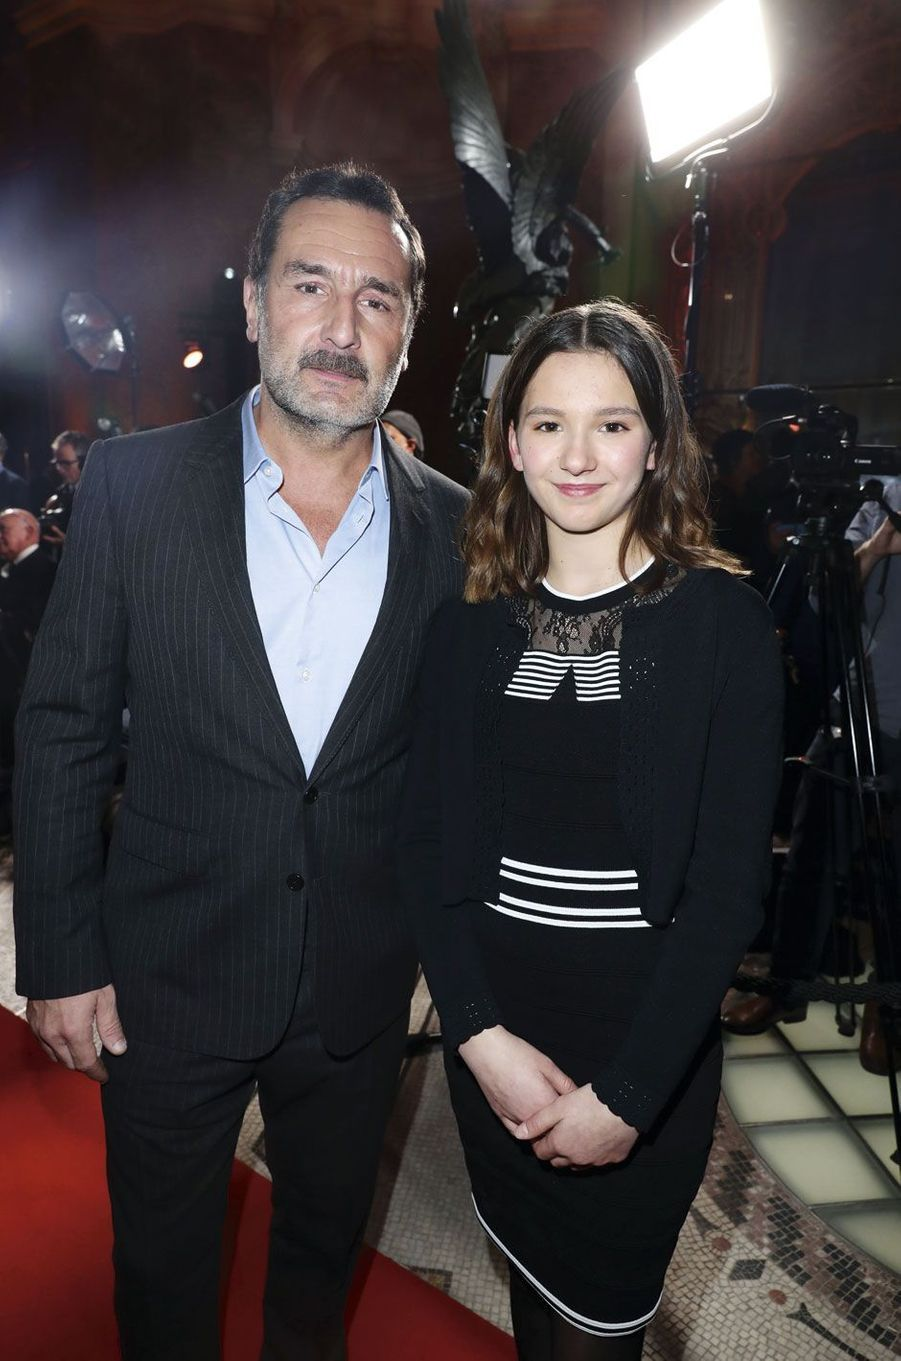 Gilles Lellouche, Lise Leplat Prudhomme.